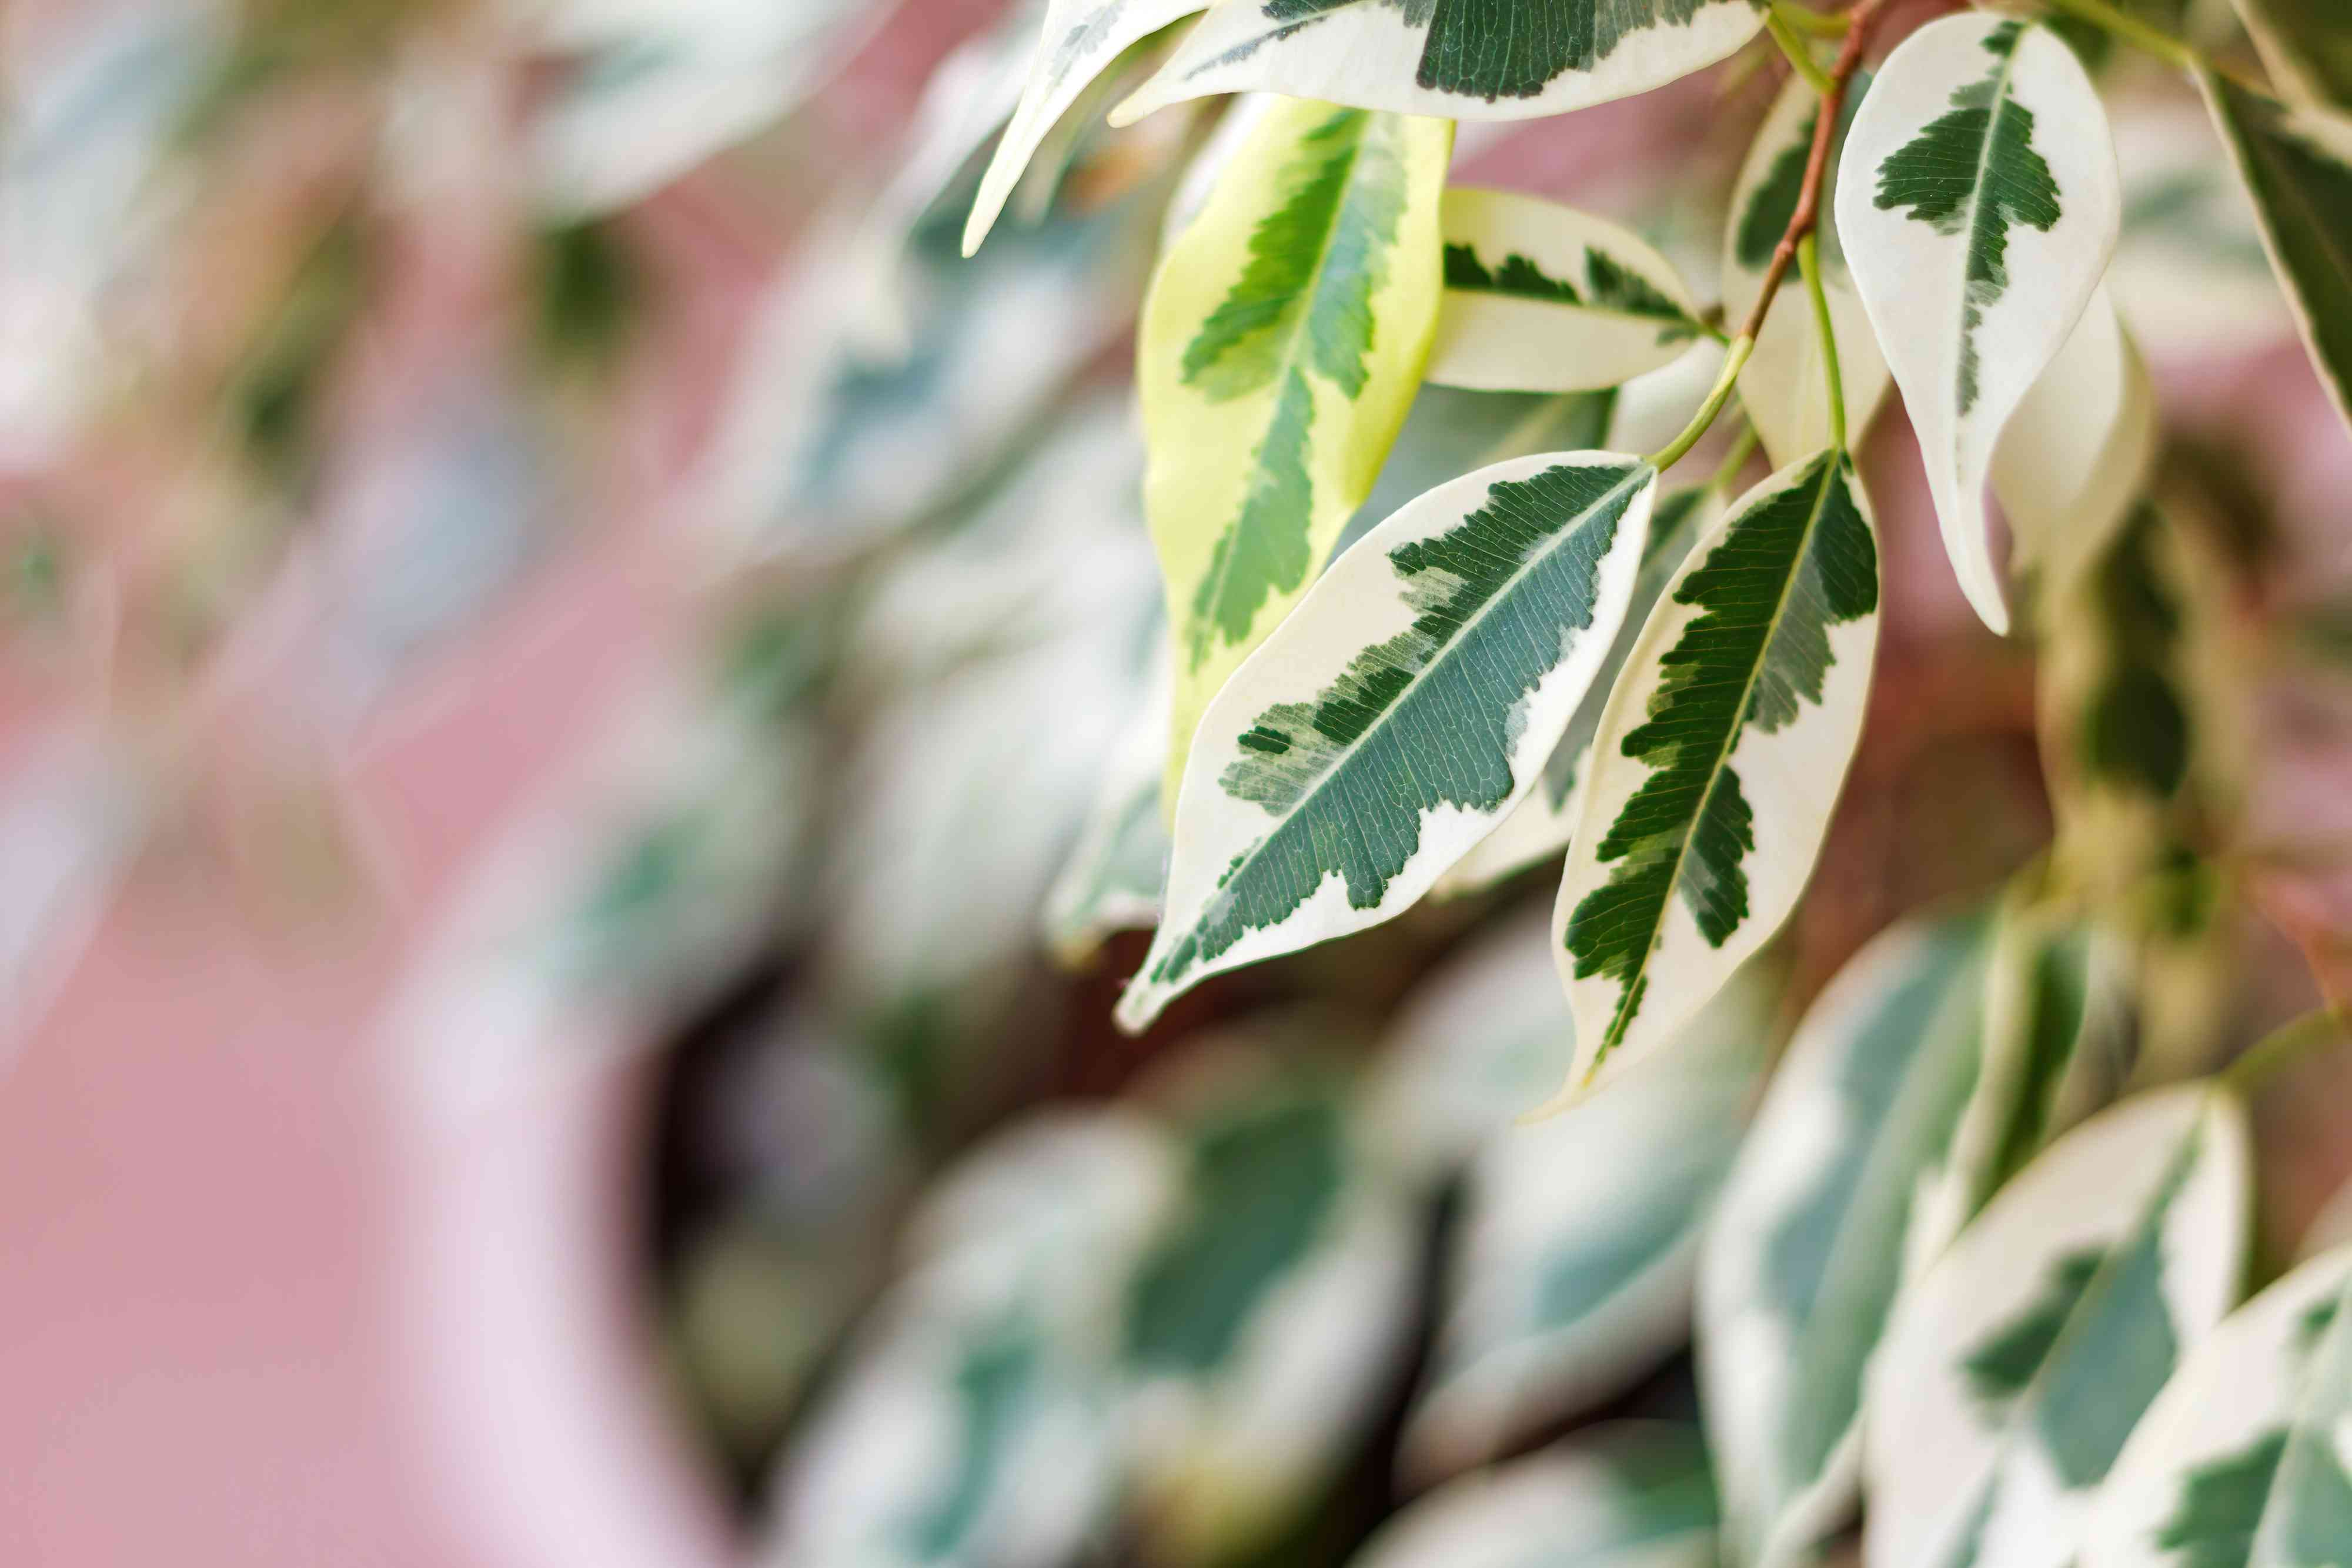 Branch of ficus benjamina with variegated leaves, selective focus, copy space.